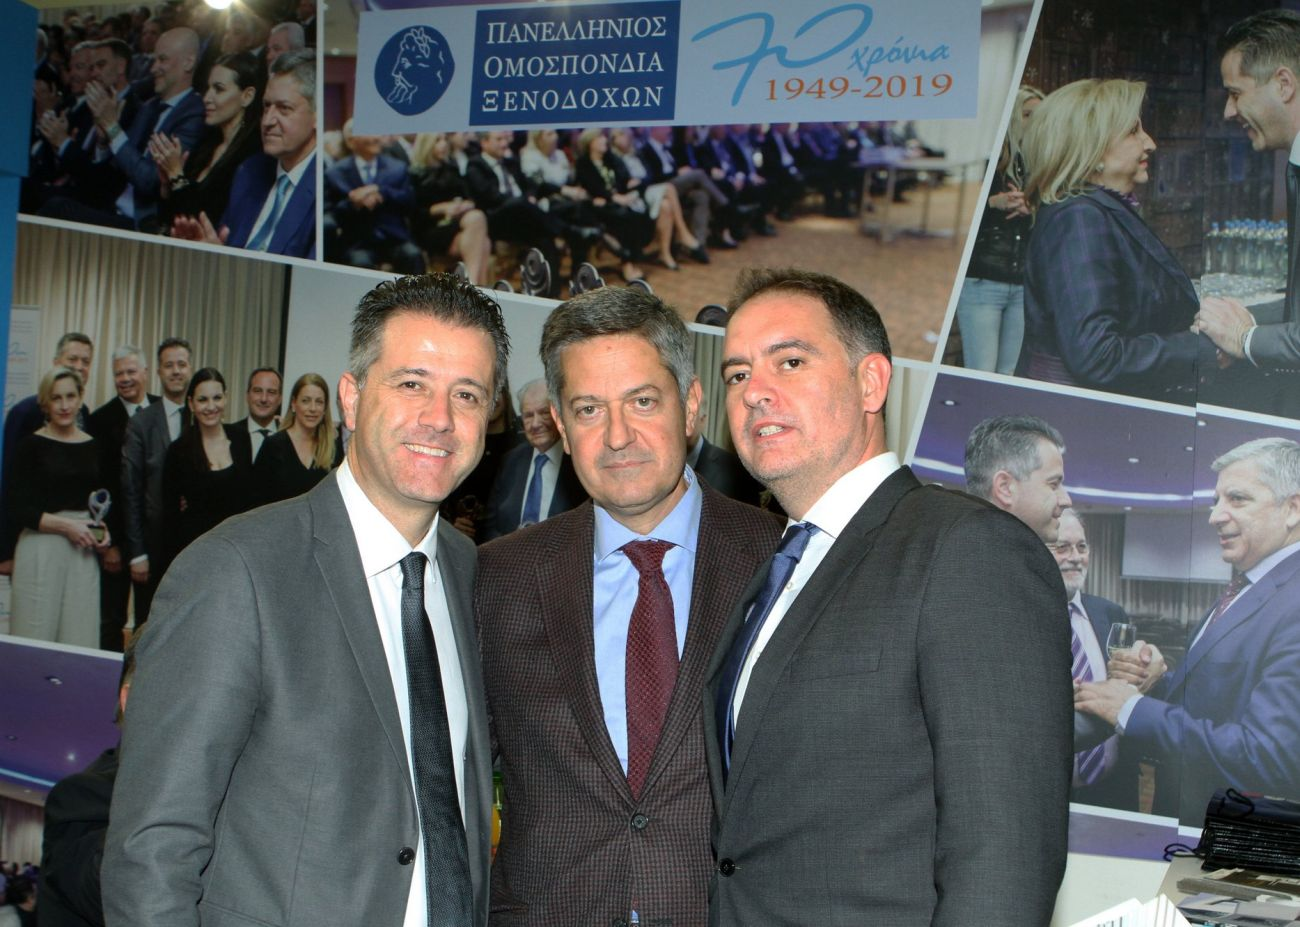 Hellenic Hoteliers Federation's president Grigoris Tasios and 1st VP, Manolis Giannoulis, with Hellenic Chamber of Hotels President Alexandros Vassilikos.